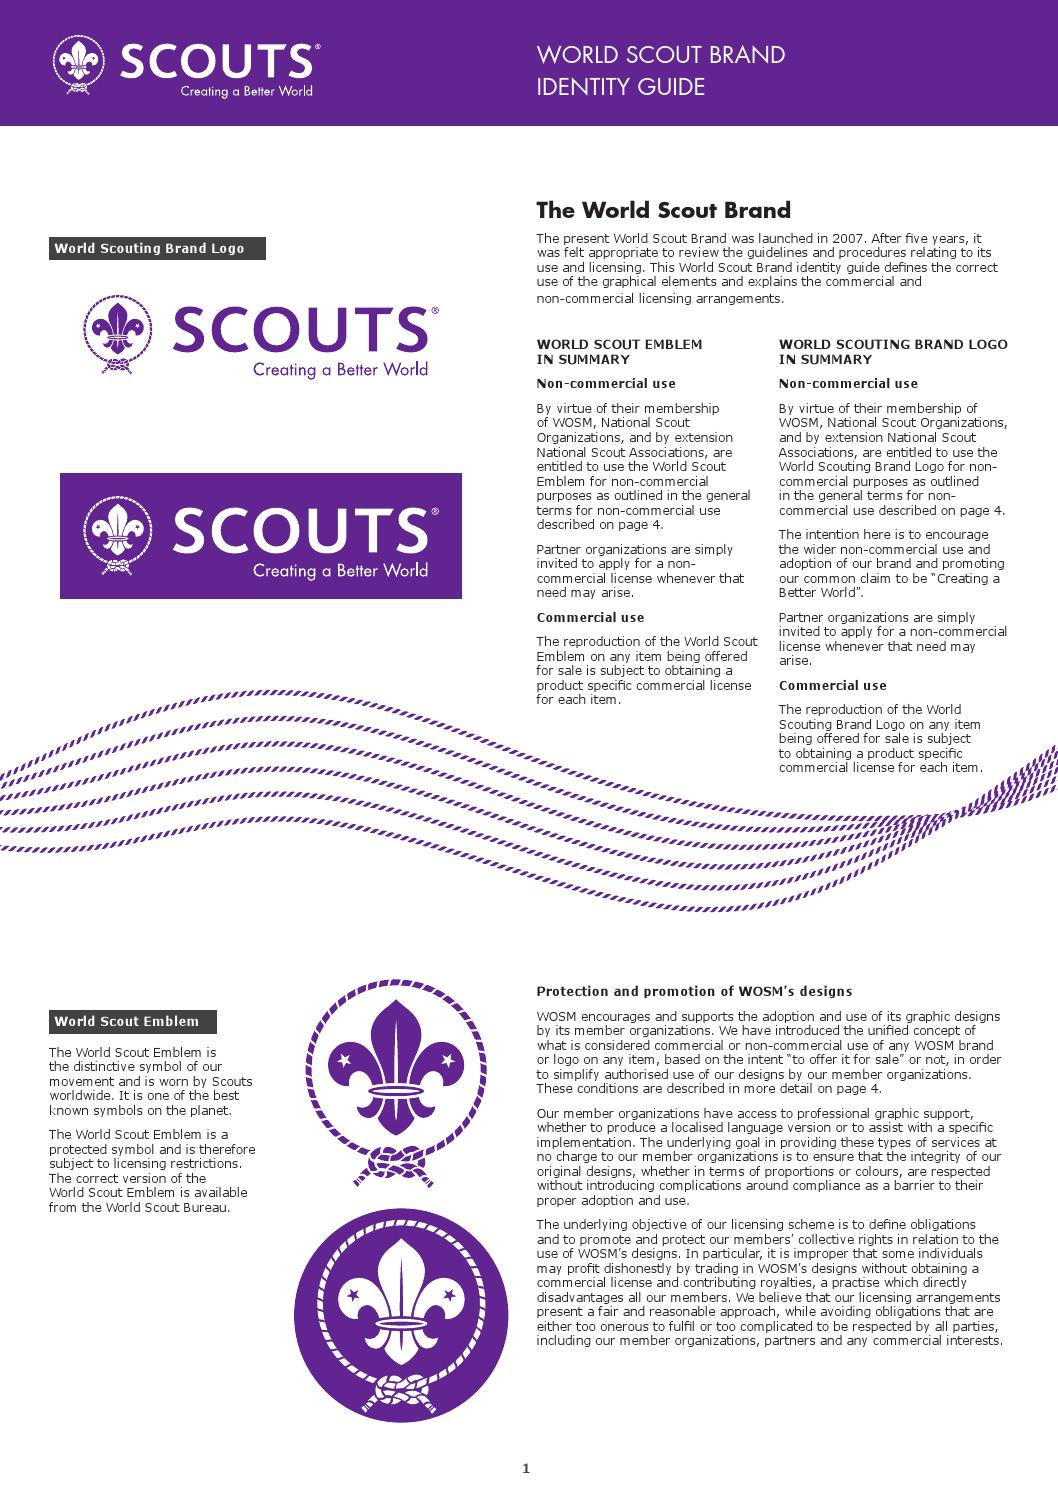 WORLD SCOUT BRAND IDENTITY GUIDE by World Organization of